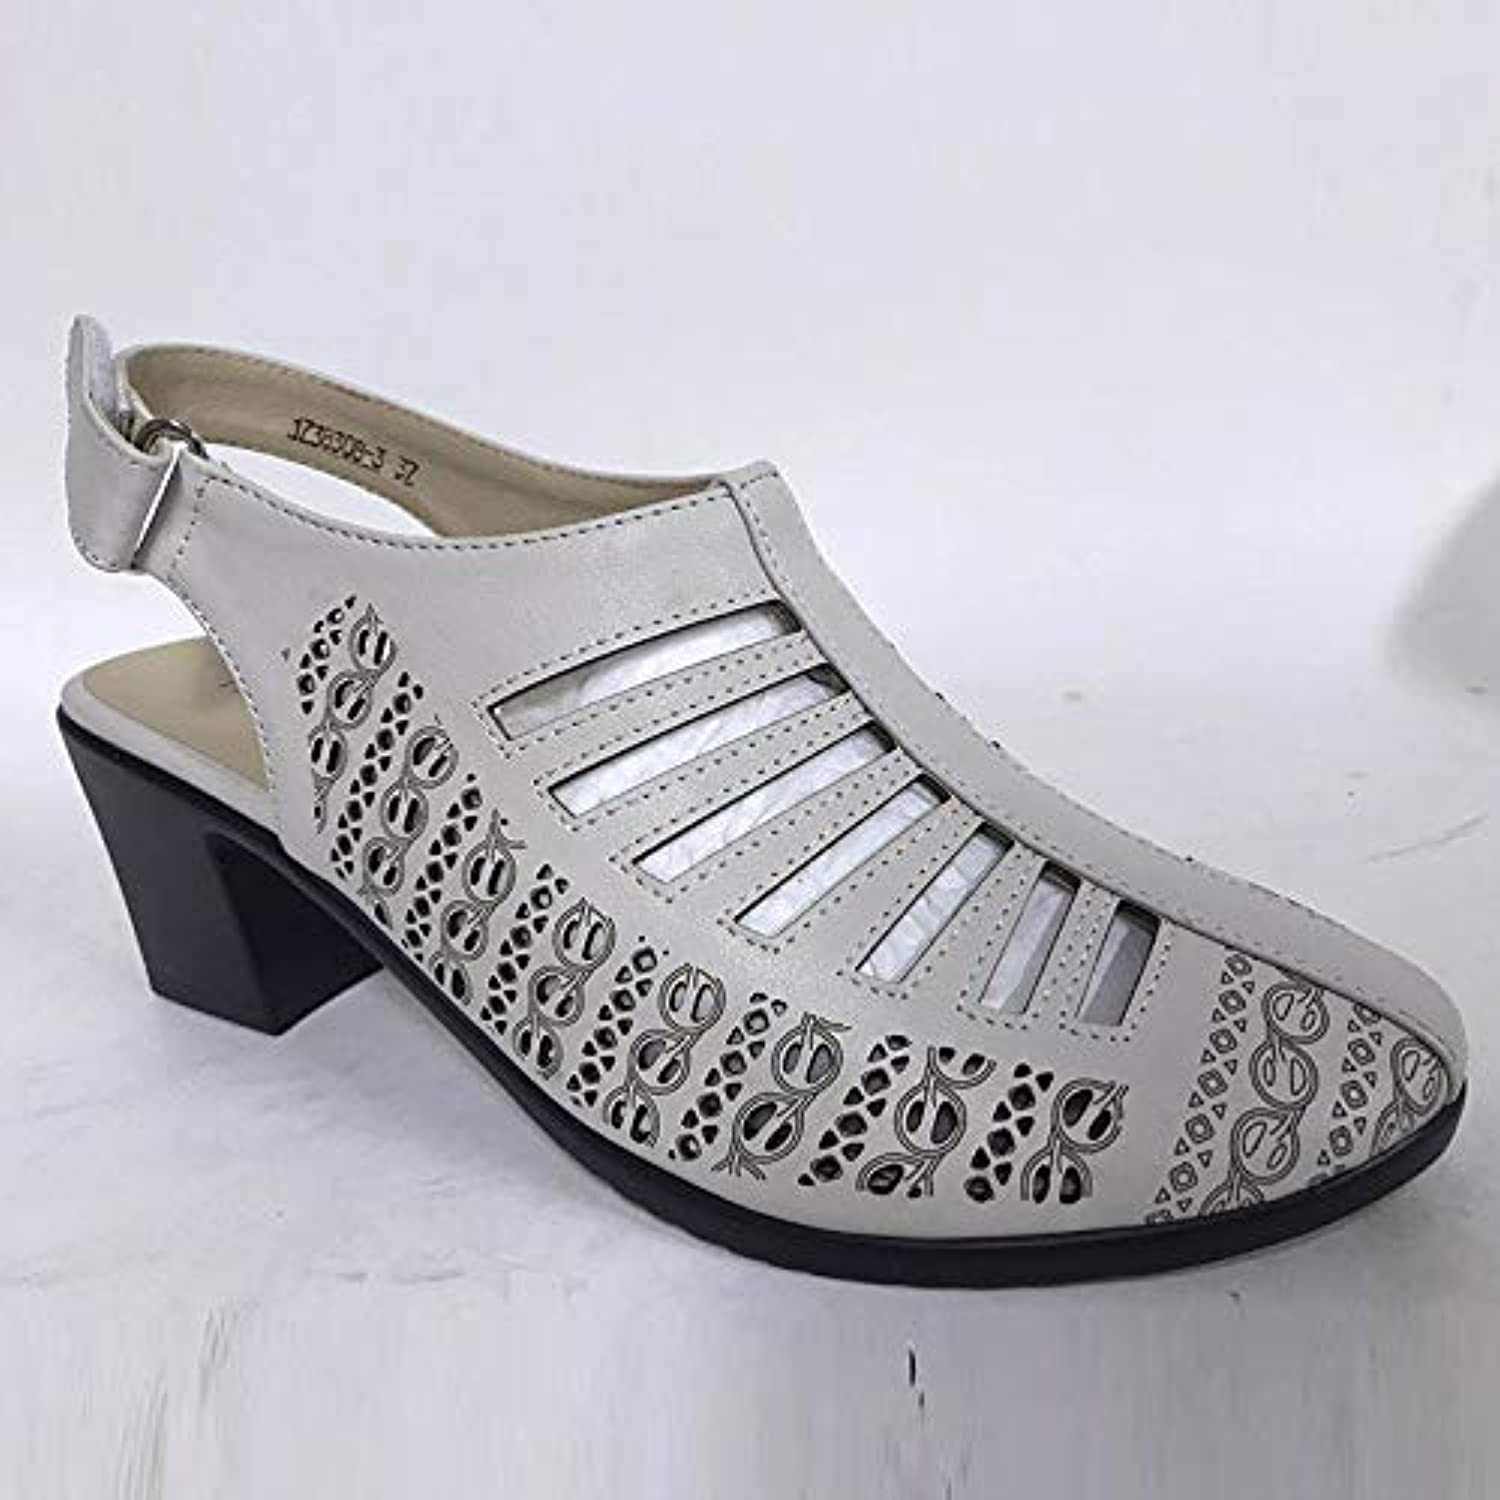 New Women Gladiator Sandals Summer shoes Black color Comfortable Heels Women shoes Hollow out shoes,B,7